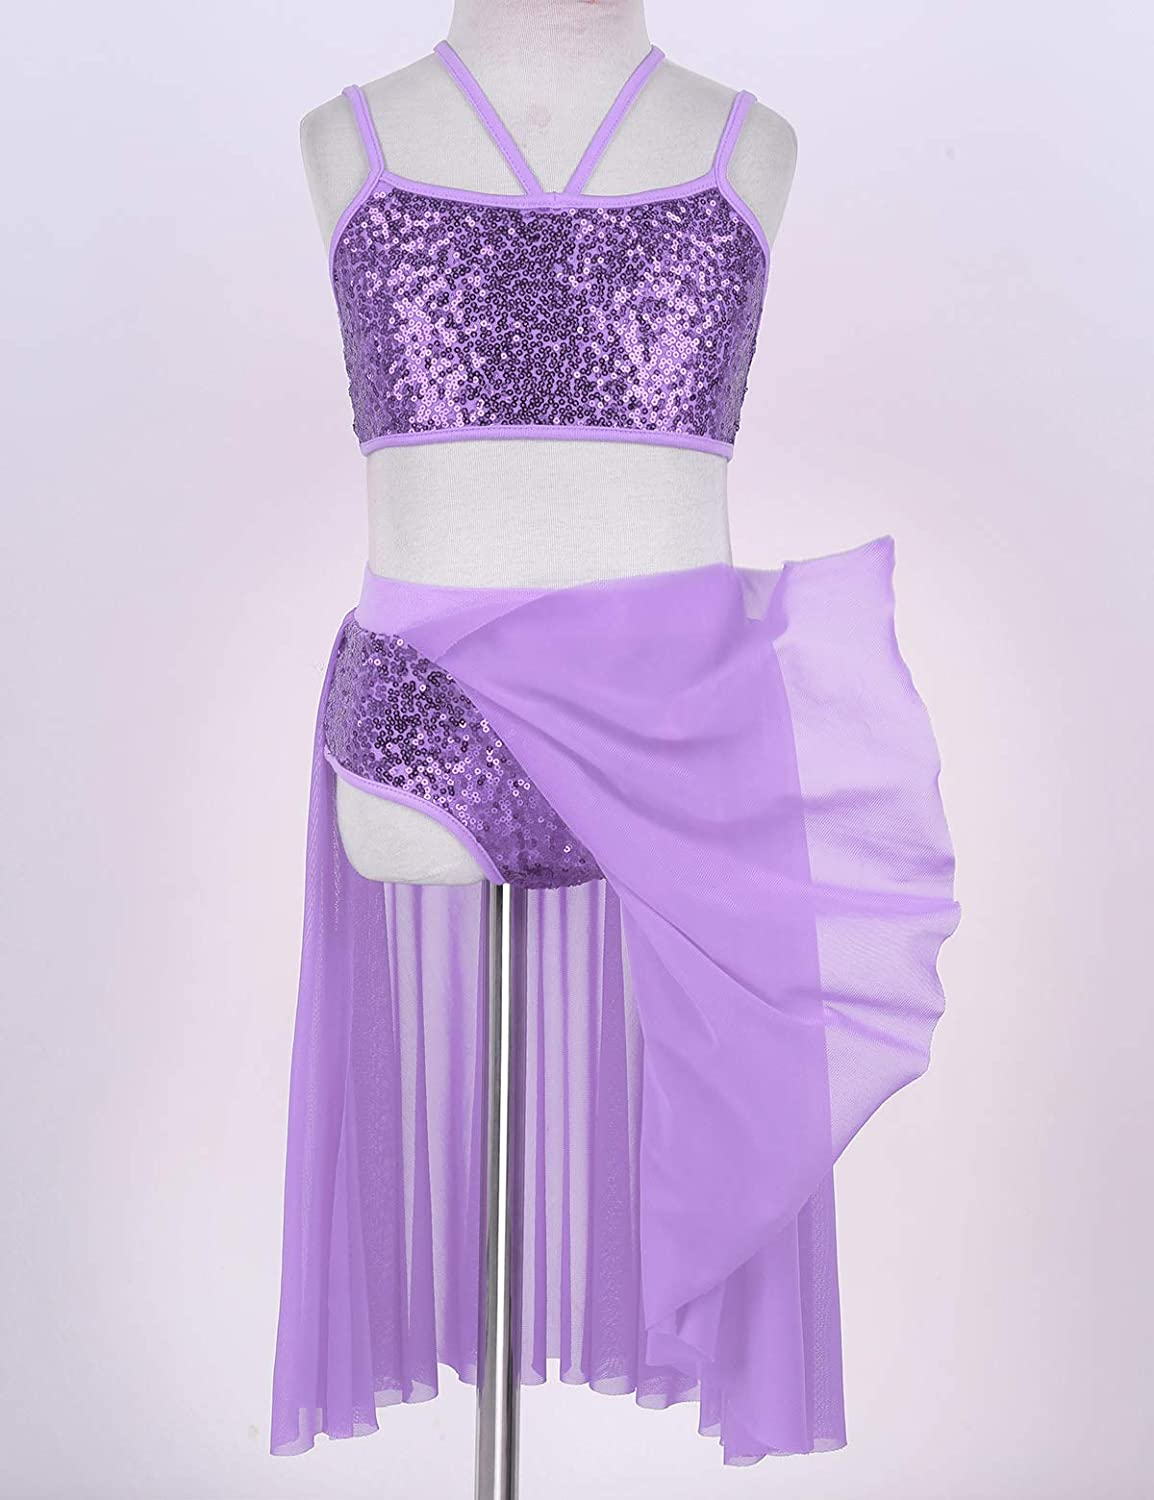 CHICTRY Big Girls Youth Lyrical Costume Asymmetrical Mesh Overlay Sequined Dance Performance Dresses